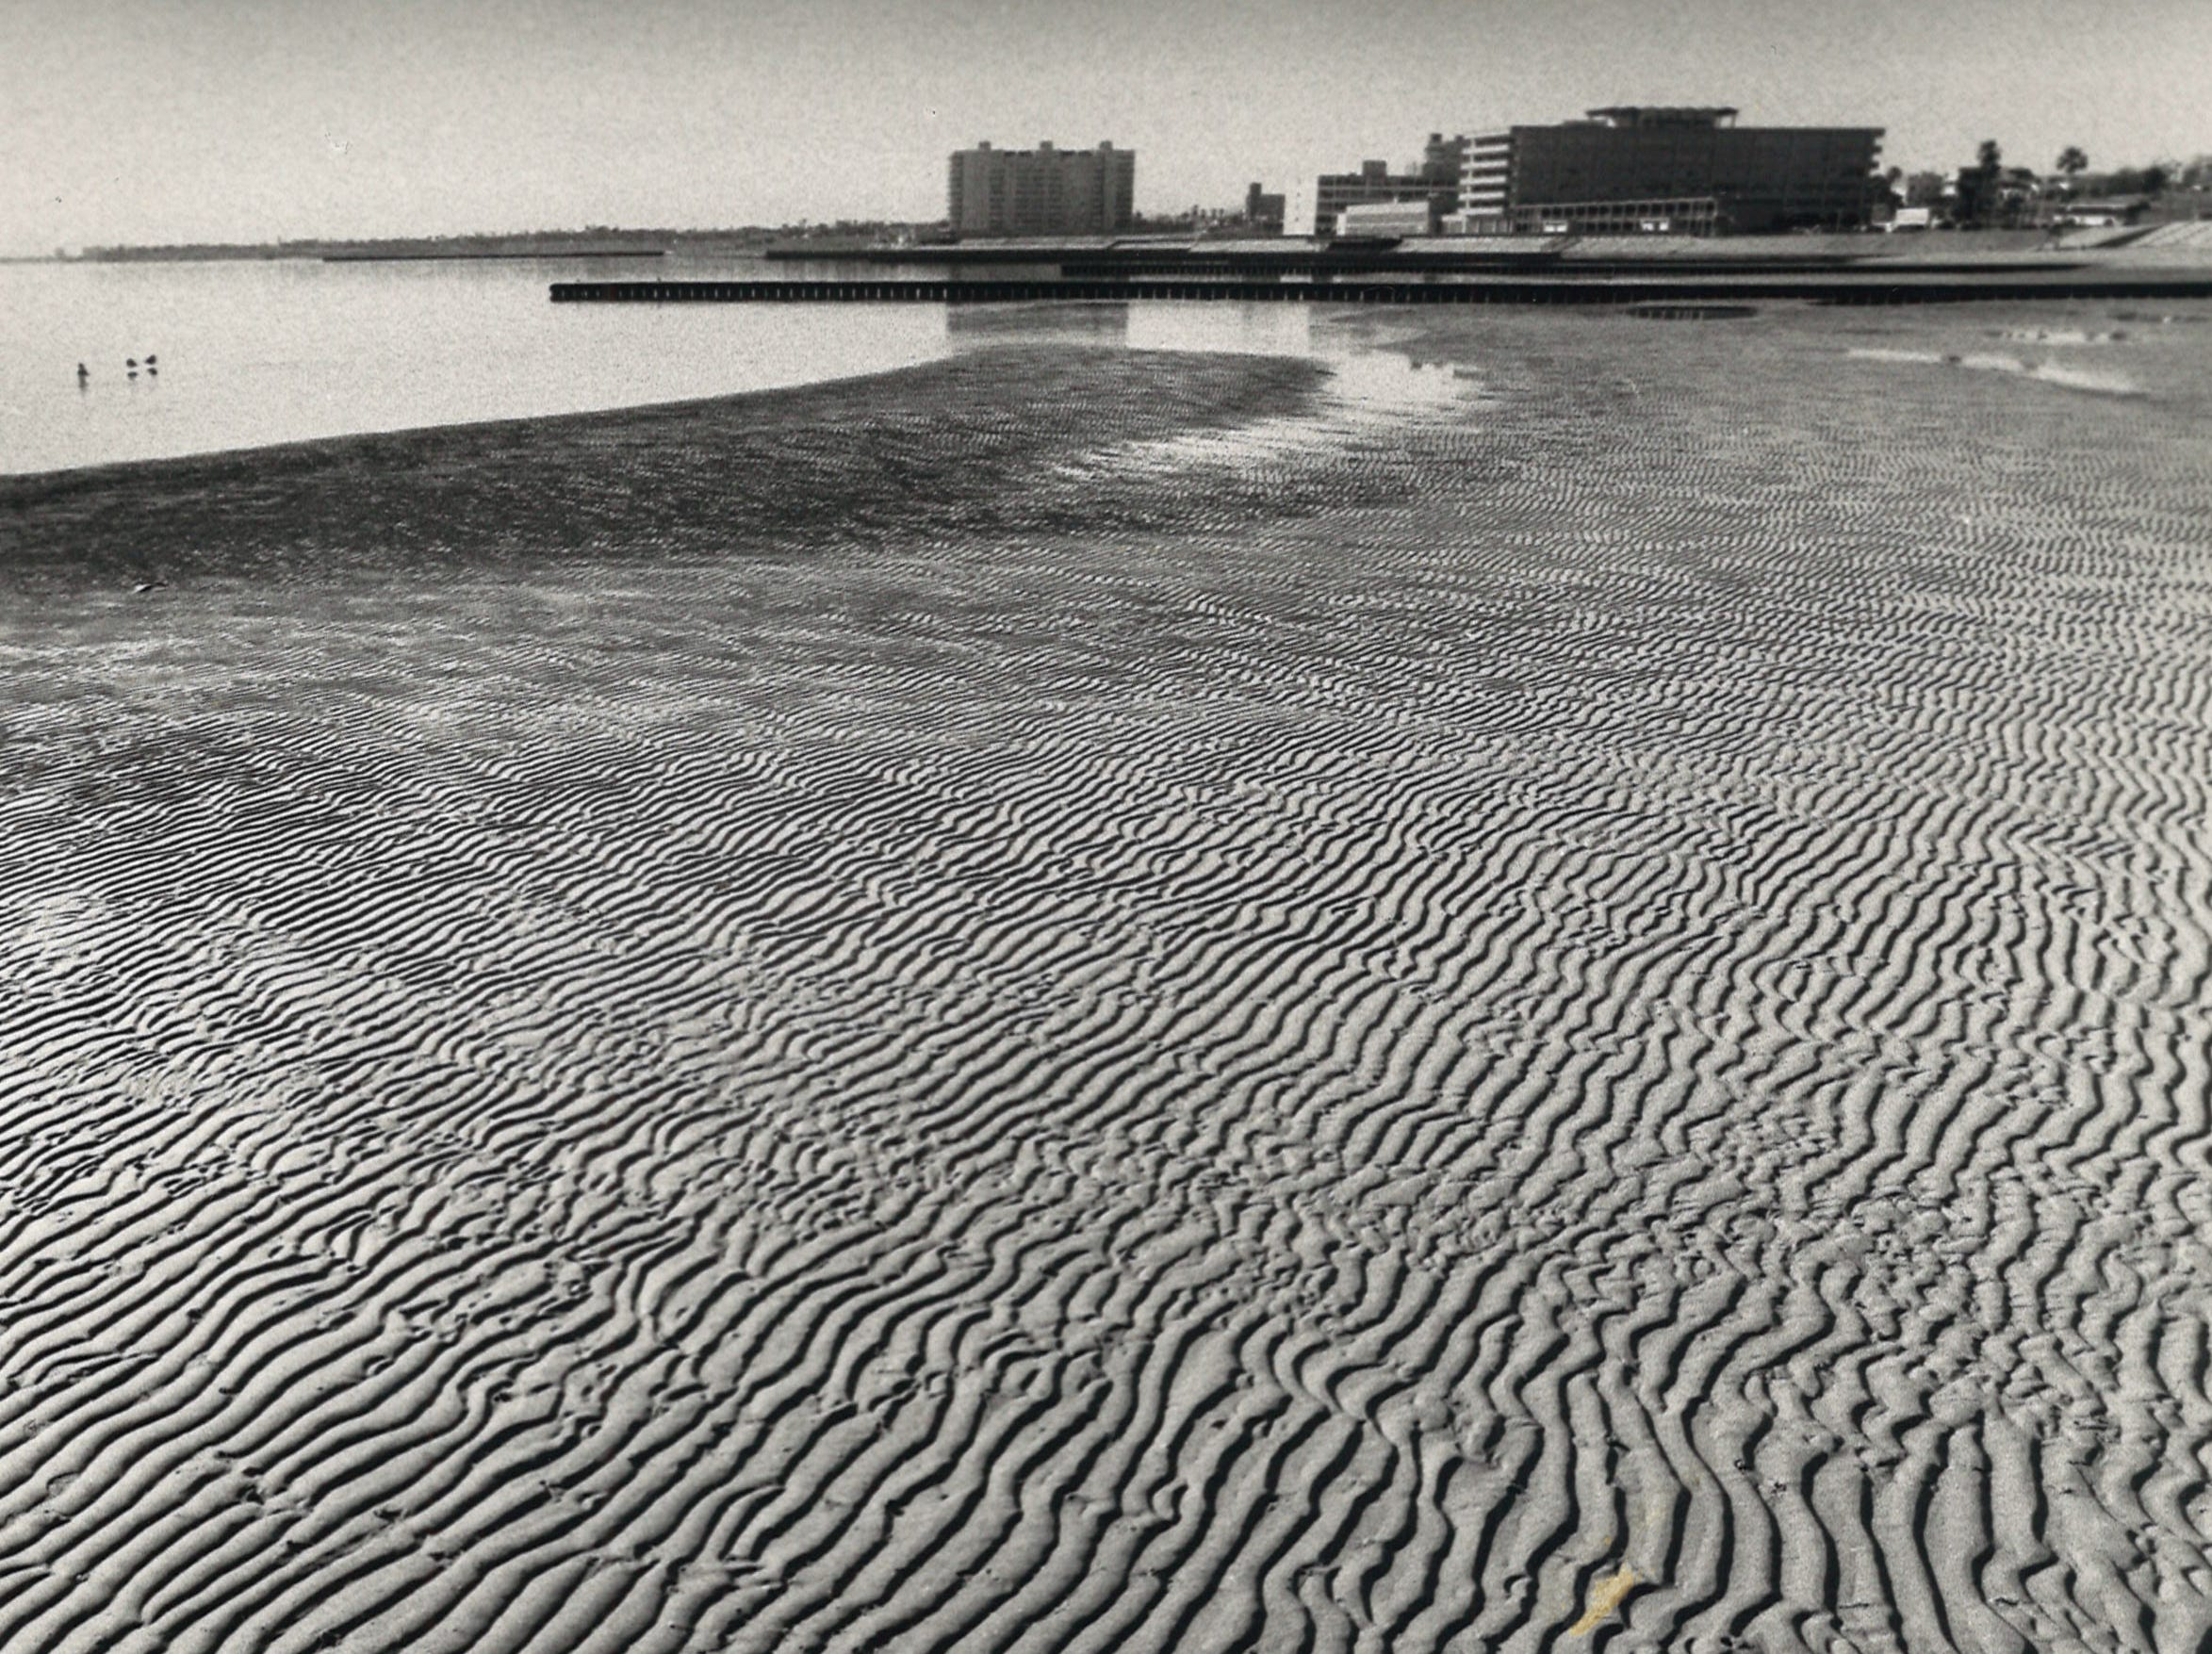 Low tide left rippled sand in its wake on McGee Beach in downtown Corpus Christi on Feb. 12, 1985.